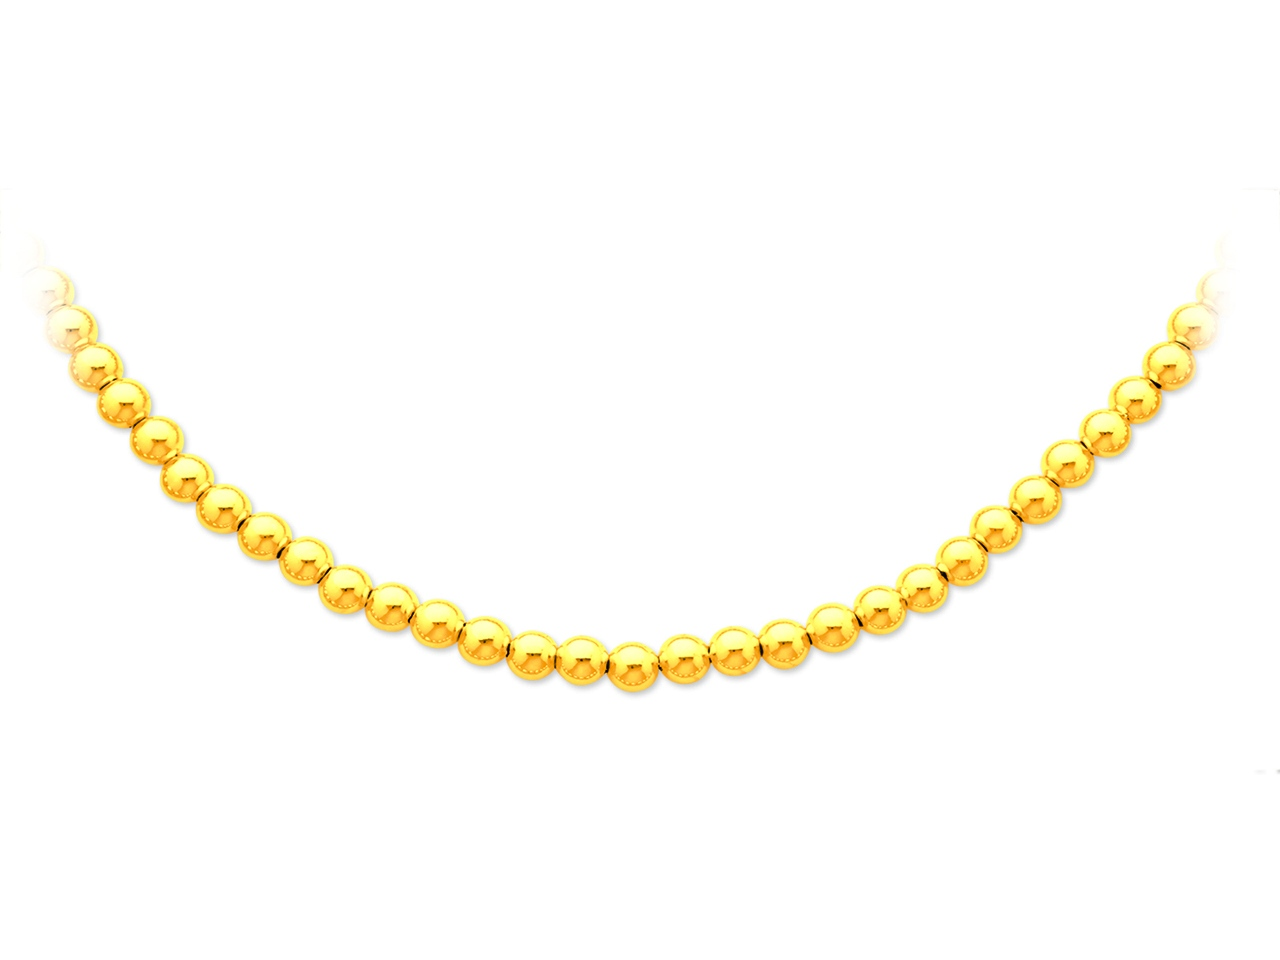 Collier boules parisien, Or jaune 18k, 6 mm, 45 cm